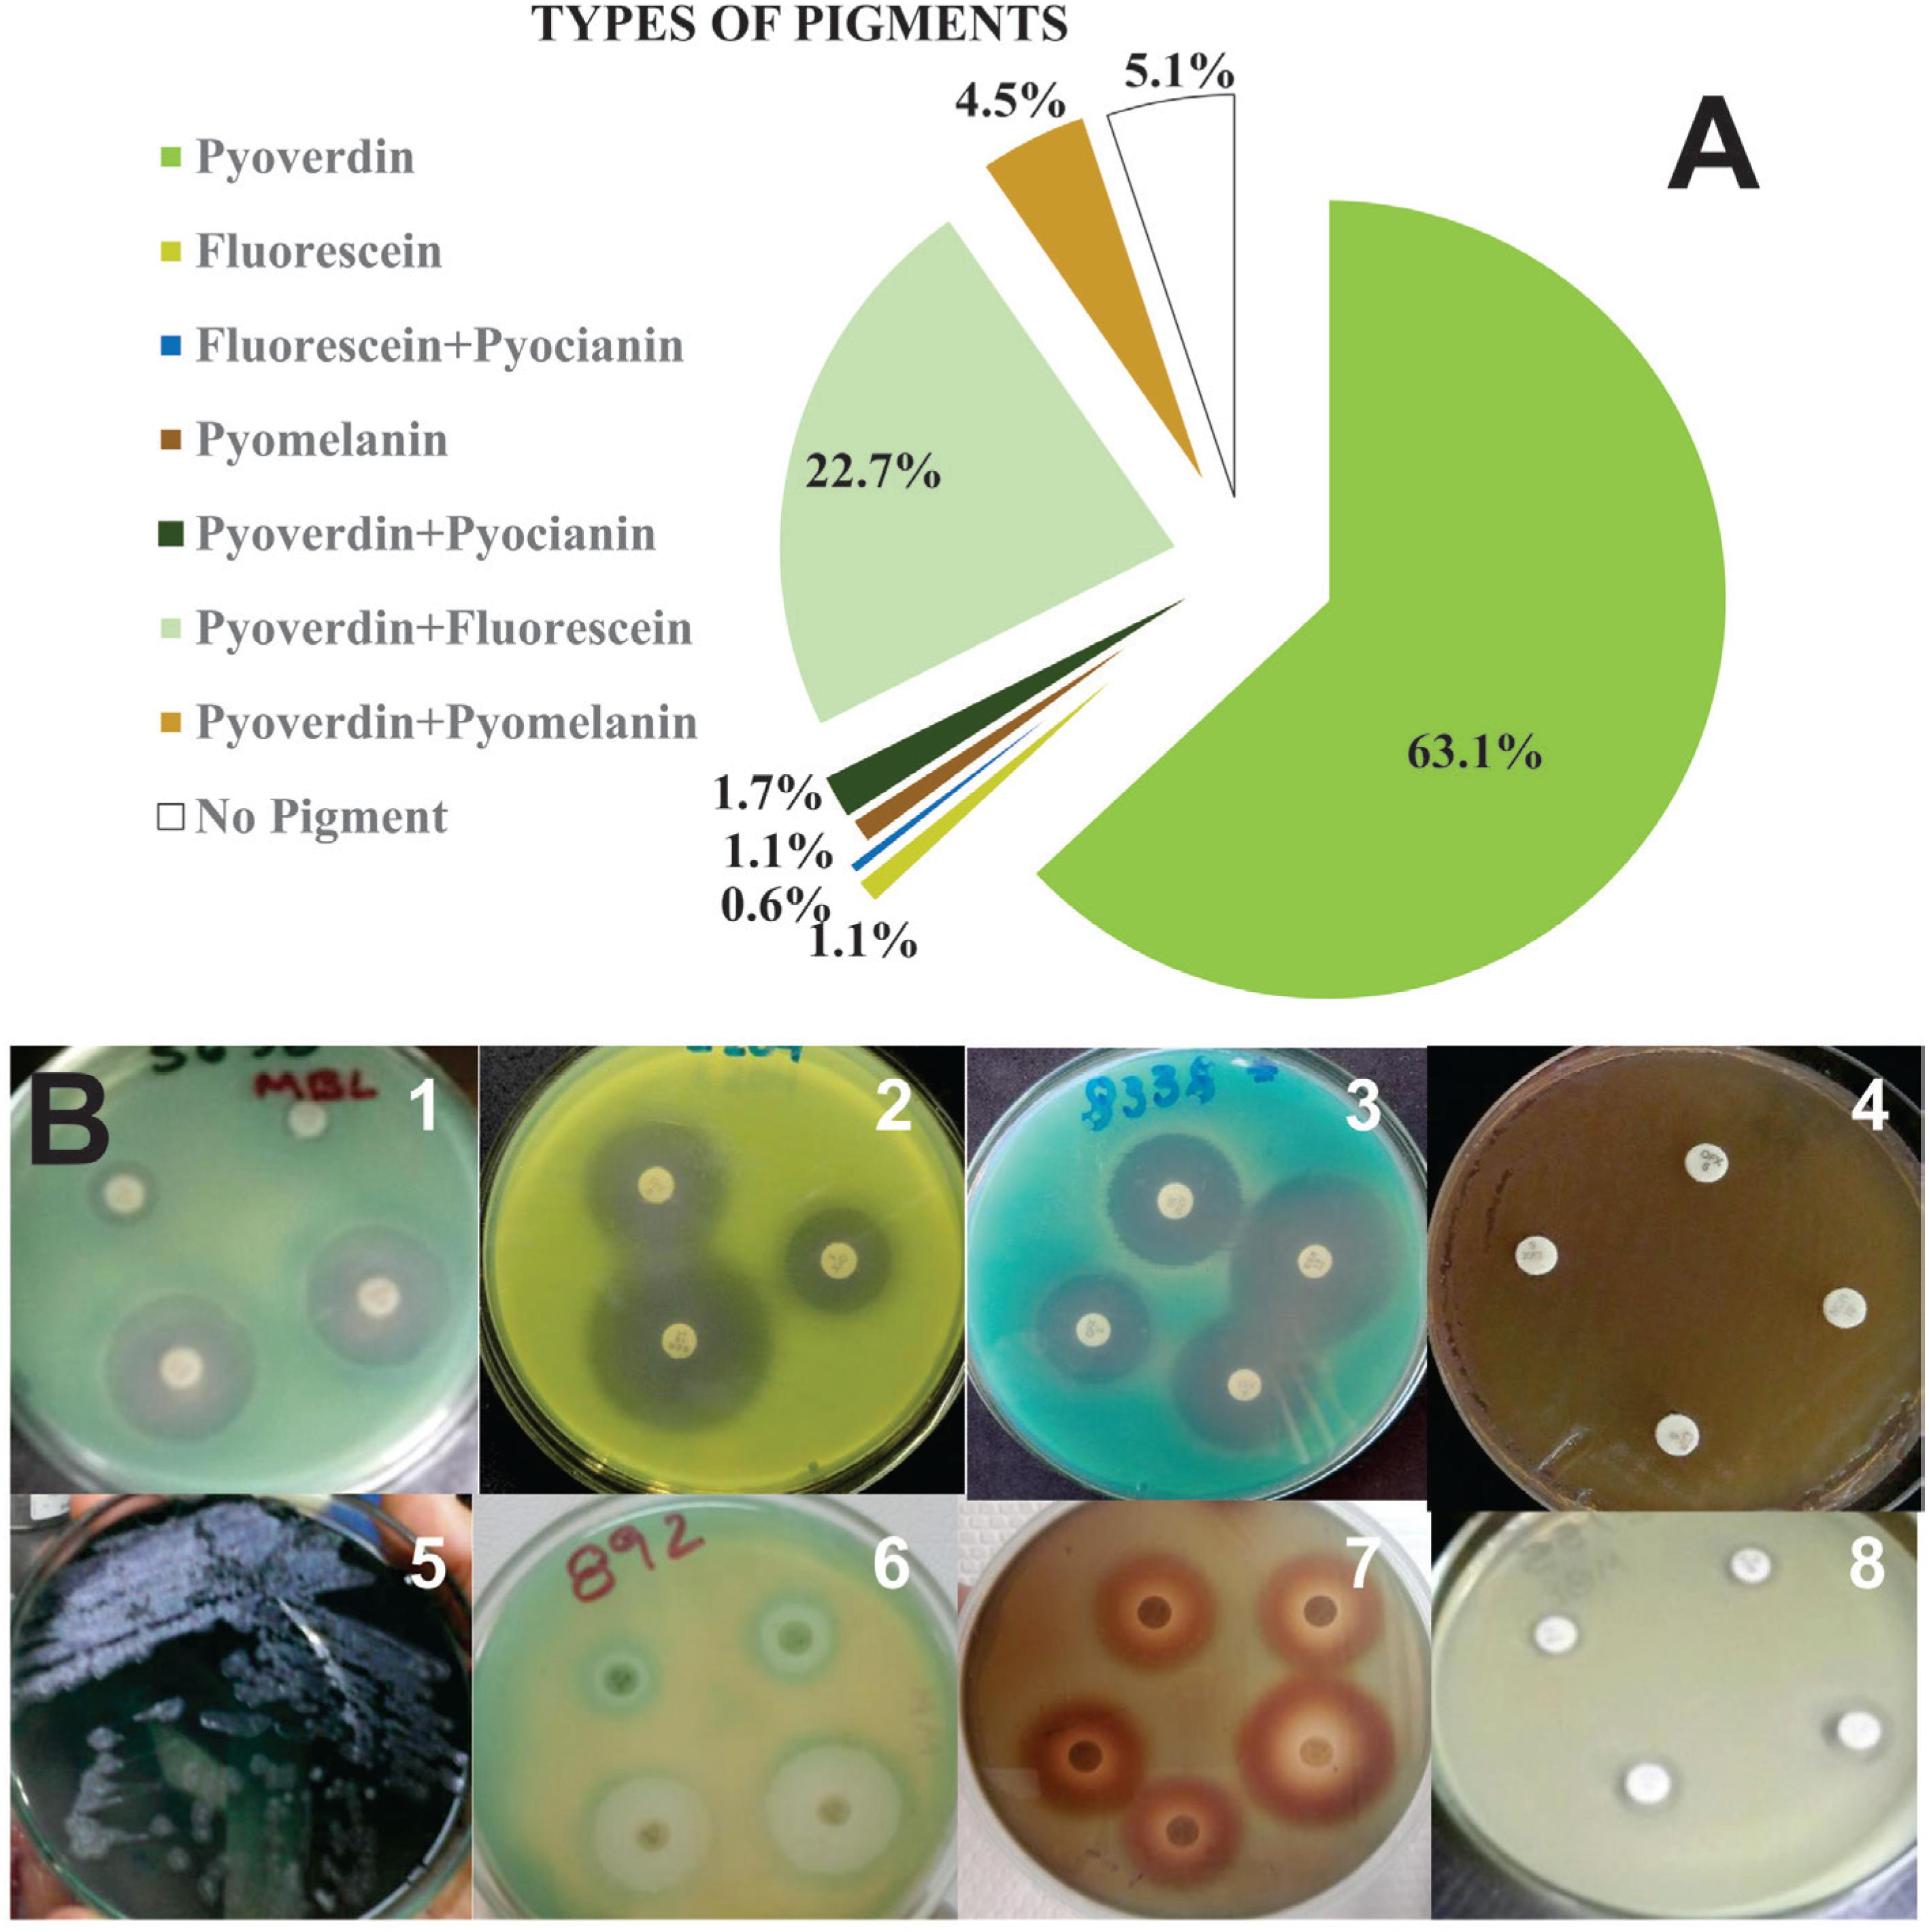 Relative frequency of types of pigments produced by P. aeruginosa strains: A) Examples of different pigments and pigment combinations produced in Mueller-Hinton agar with antibiotics; B) 1: pyoverdine, 2: fluorescein, 3: fluorescein + pyocyanin, 4: pyomelanin, 5: pyoverdine + pyocyanin, 6: pyoverdine + fluorescein, 7: pyoverdine + pyomelanin, and 8: no pigment.